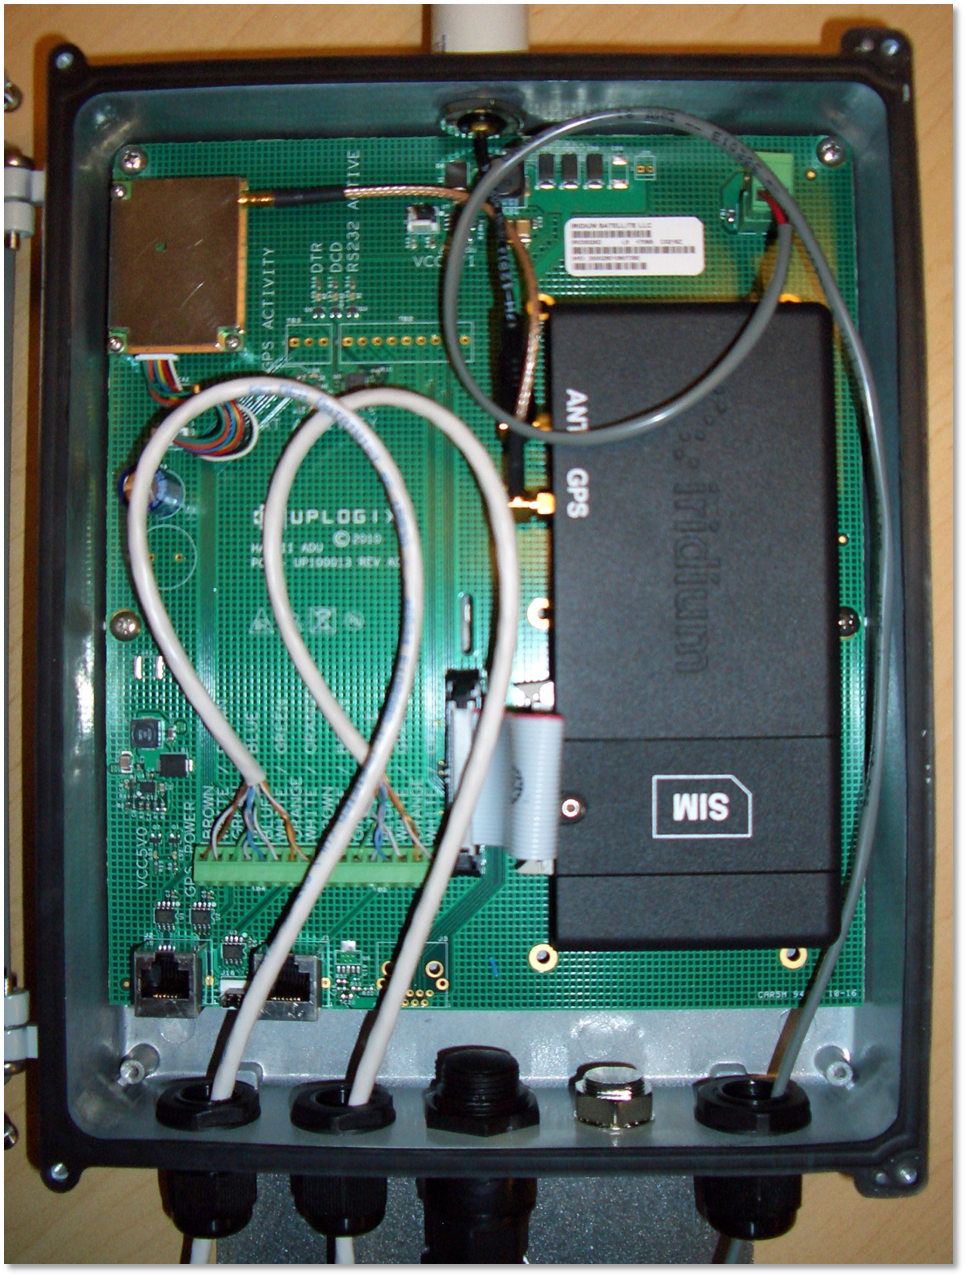 Above Deck Unit with RJ-45 Wiring